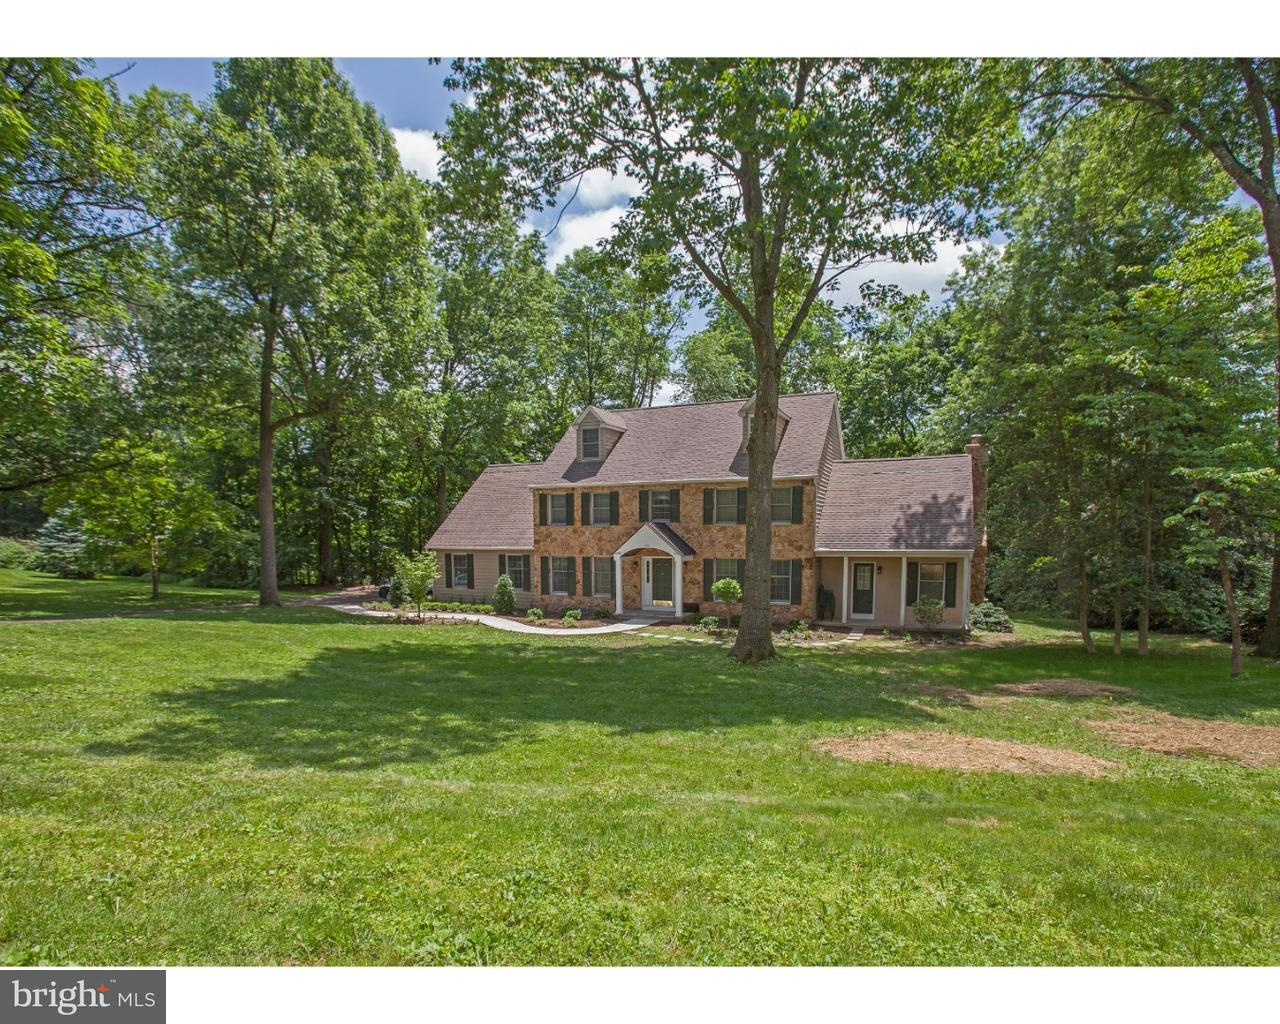 412 LINCOLN AVE, DOYLESTOWN - Listed at $995,000, DOYLESTOWN